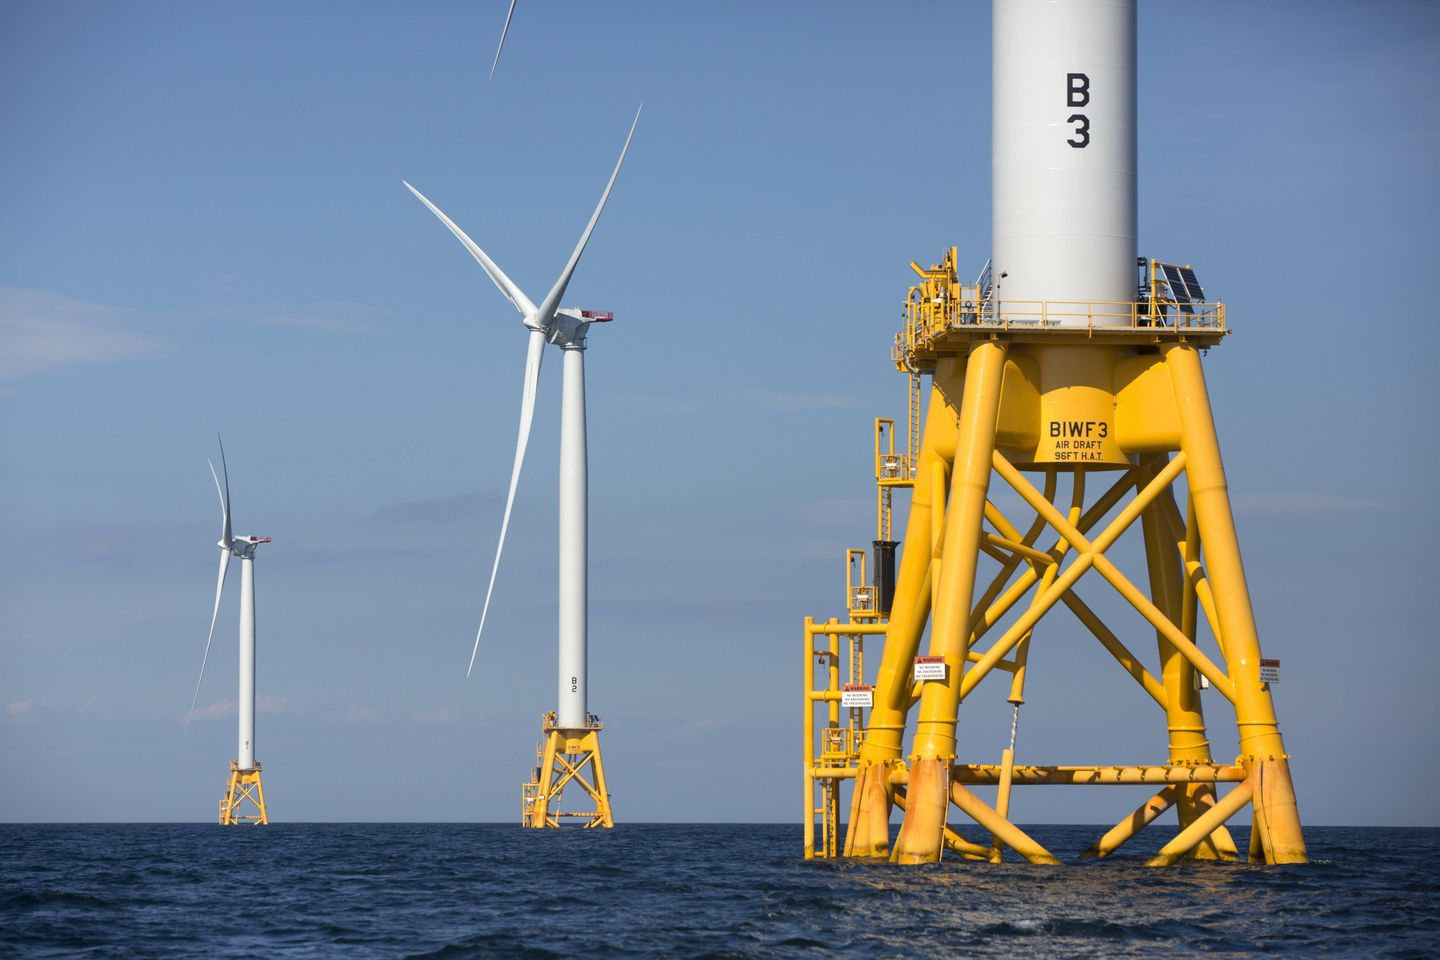 Biden hopes to boost offshore wind as Mass. project advances